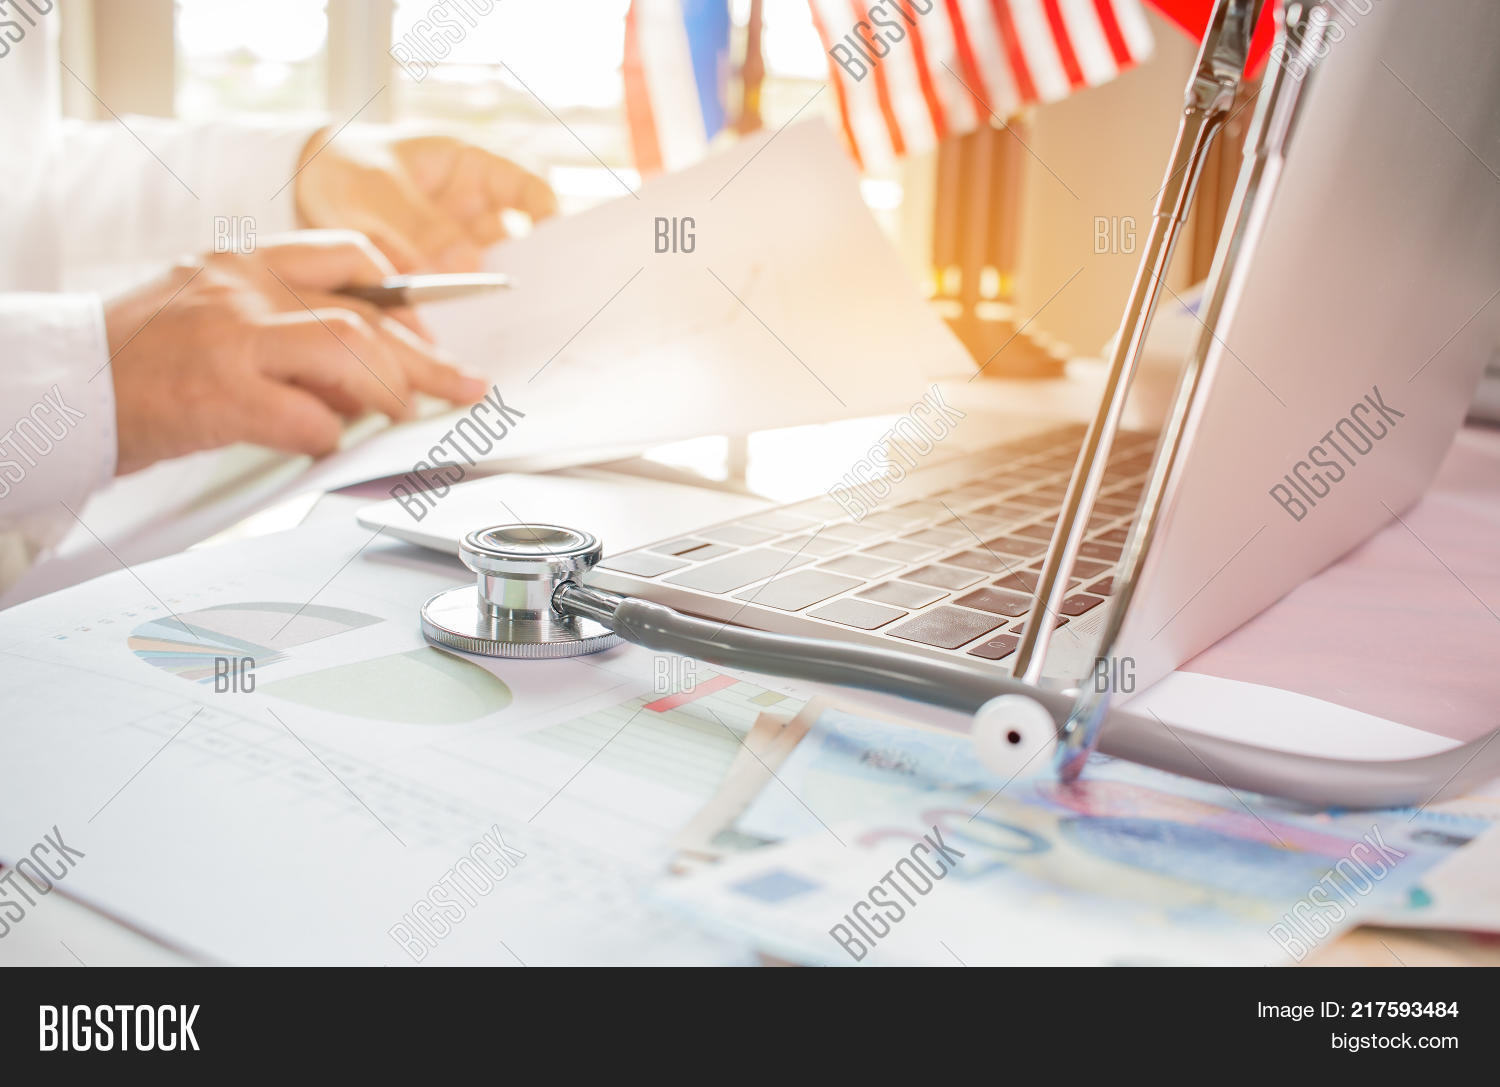 accounting,adult,analysis,background,business,businessman,care,caucasian,chart,clinic,computer,corporate,data,desk,doctor,document,executive,finance,financial,graph,health,healthcare,hospital,investment,laptop,male,management,manager,medical,medicine,metrics,notebook,office,officer,paperwork,partnership,physician,plan,professional,report,results,revenue,specialist,statistics,team,technology,workplace,young